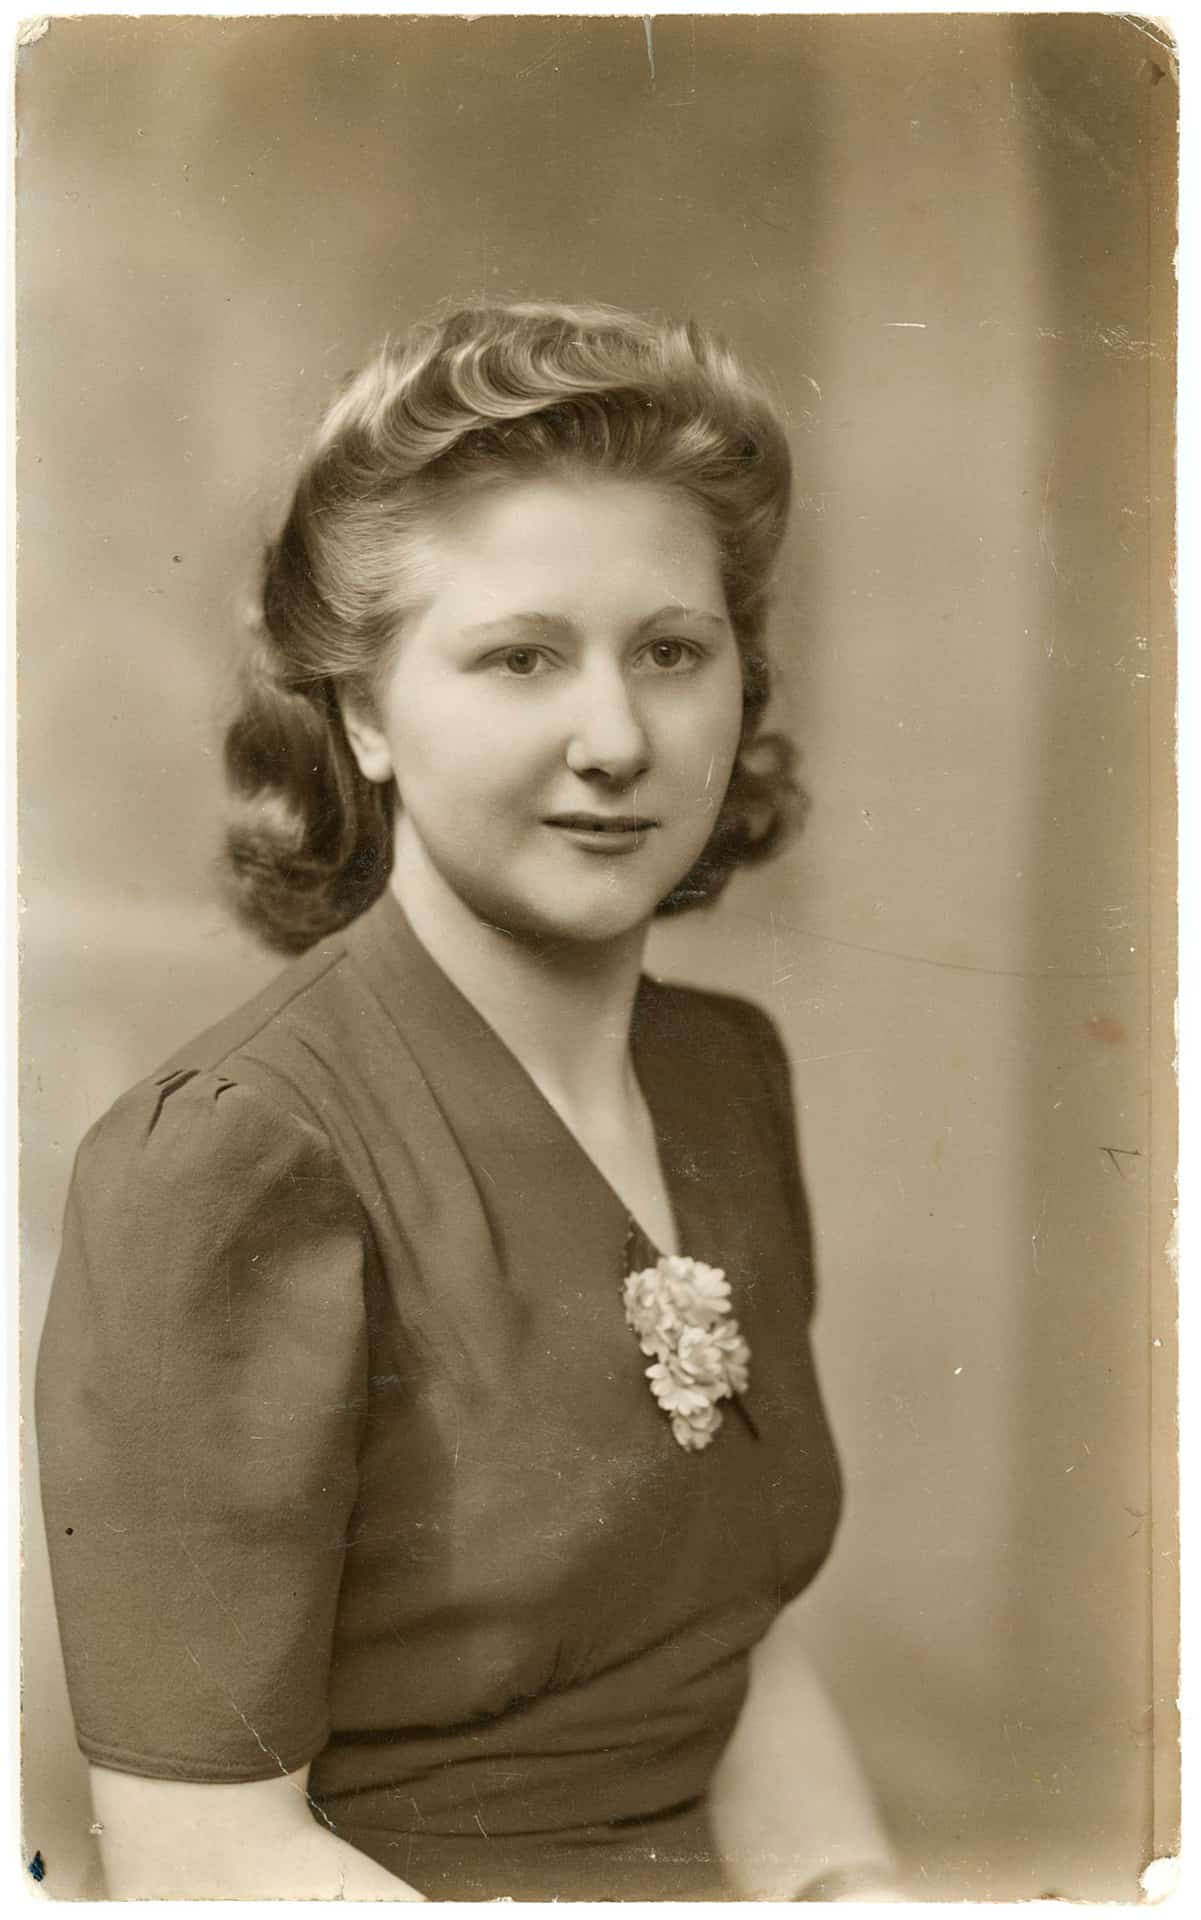 Studio photo of Mom when she was in her 20s